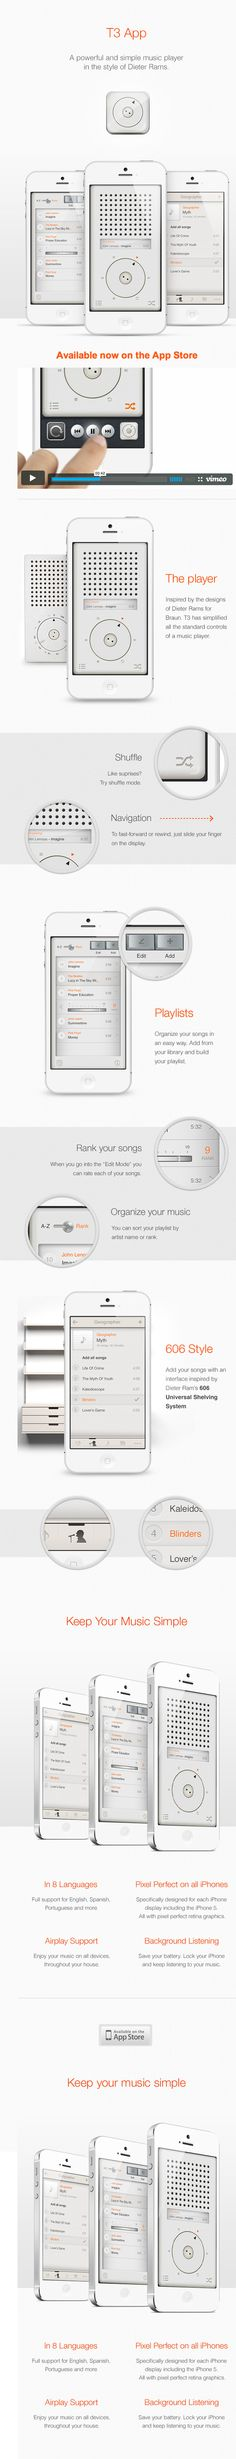 """T3 Player App by Eder Rengifo, via Behance *** """" The T3 app is designed for people who love minimalism and beautiful vintage design. Inspired by the designs of Dieter Rams, this app is perfect to escape from the chaos of your music library. Select your favorite songs, add to the playlist and enjoy. The app is fully retina and has special support for the iPhone 5. With Airplay you can listen on all of your other devices. English, Spanish, and a total of 8 different languages are supported. """""""